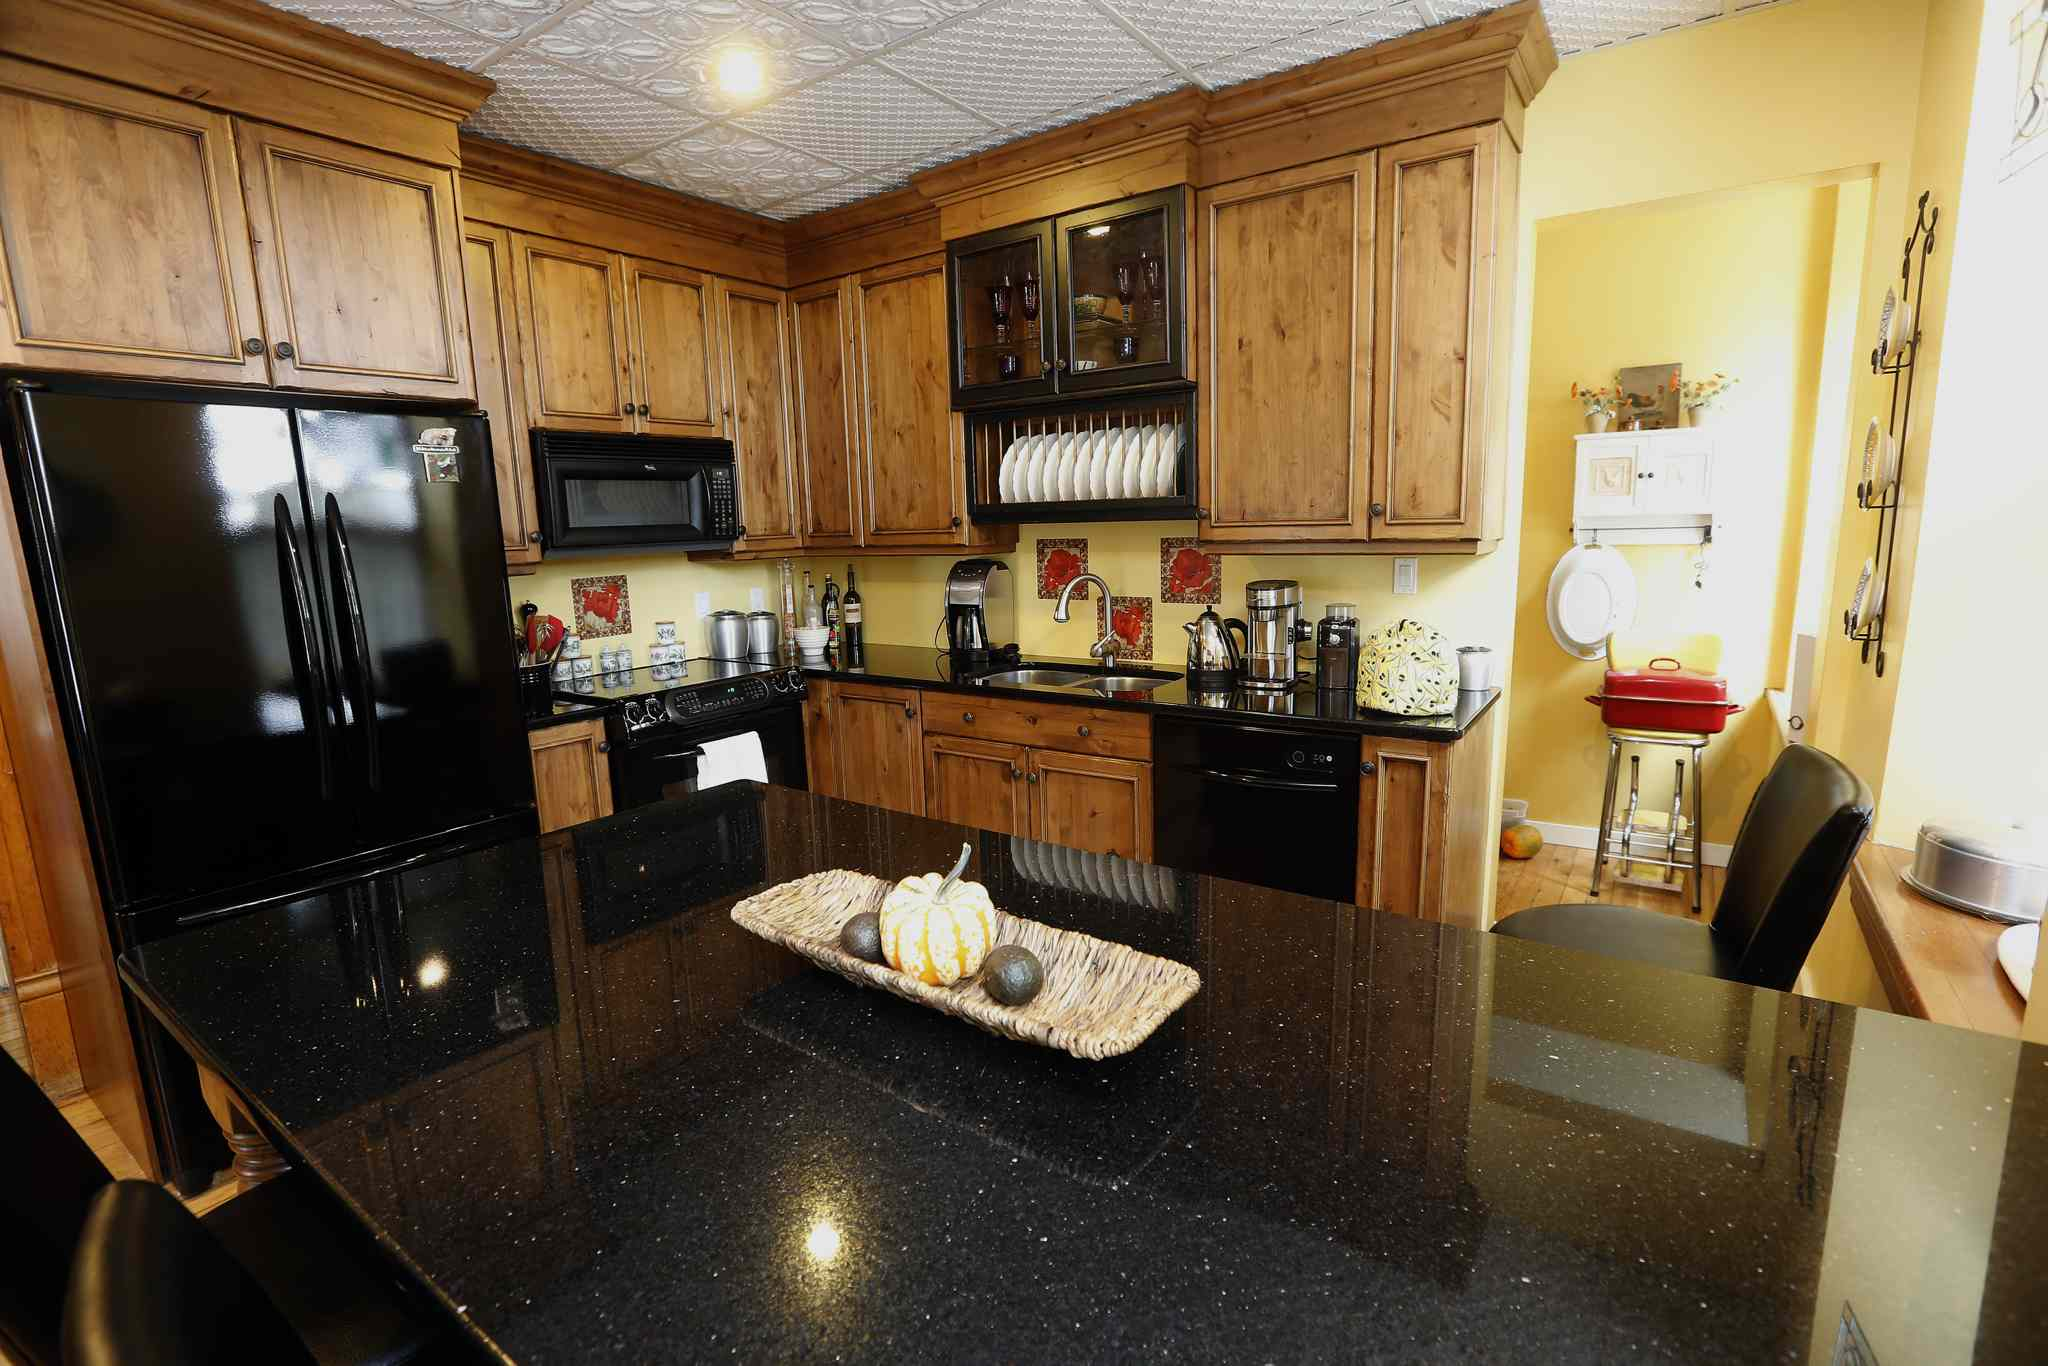 The house's kitchen is quite modern, and features granite counter tops.